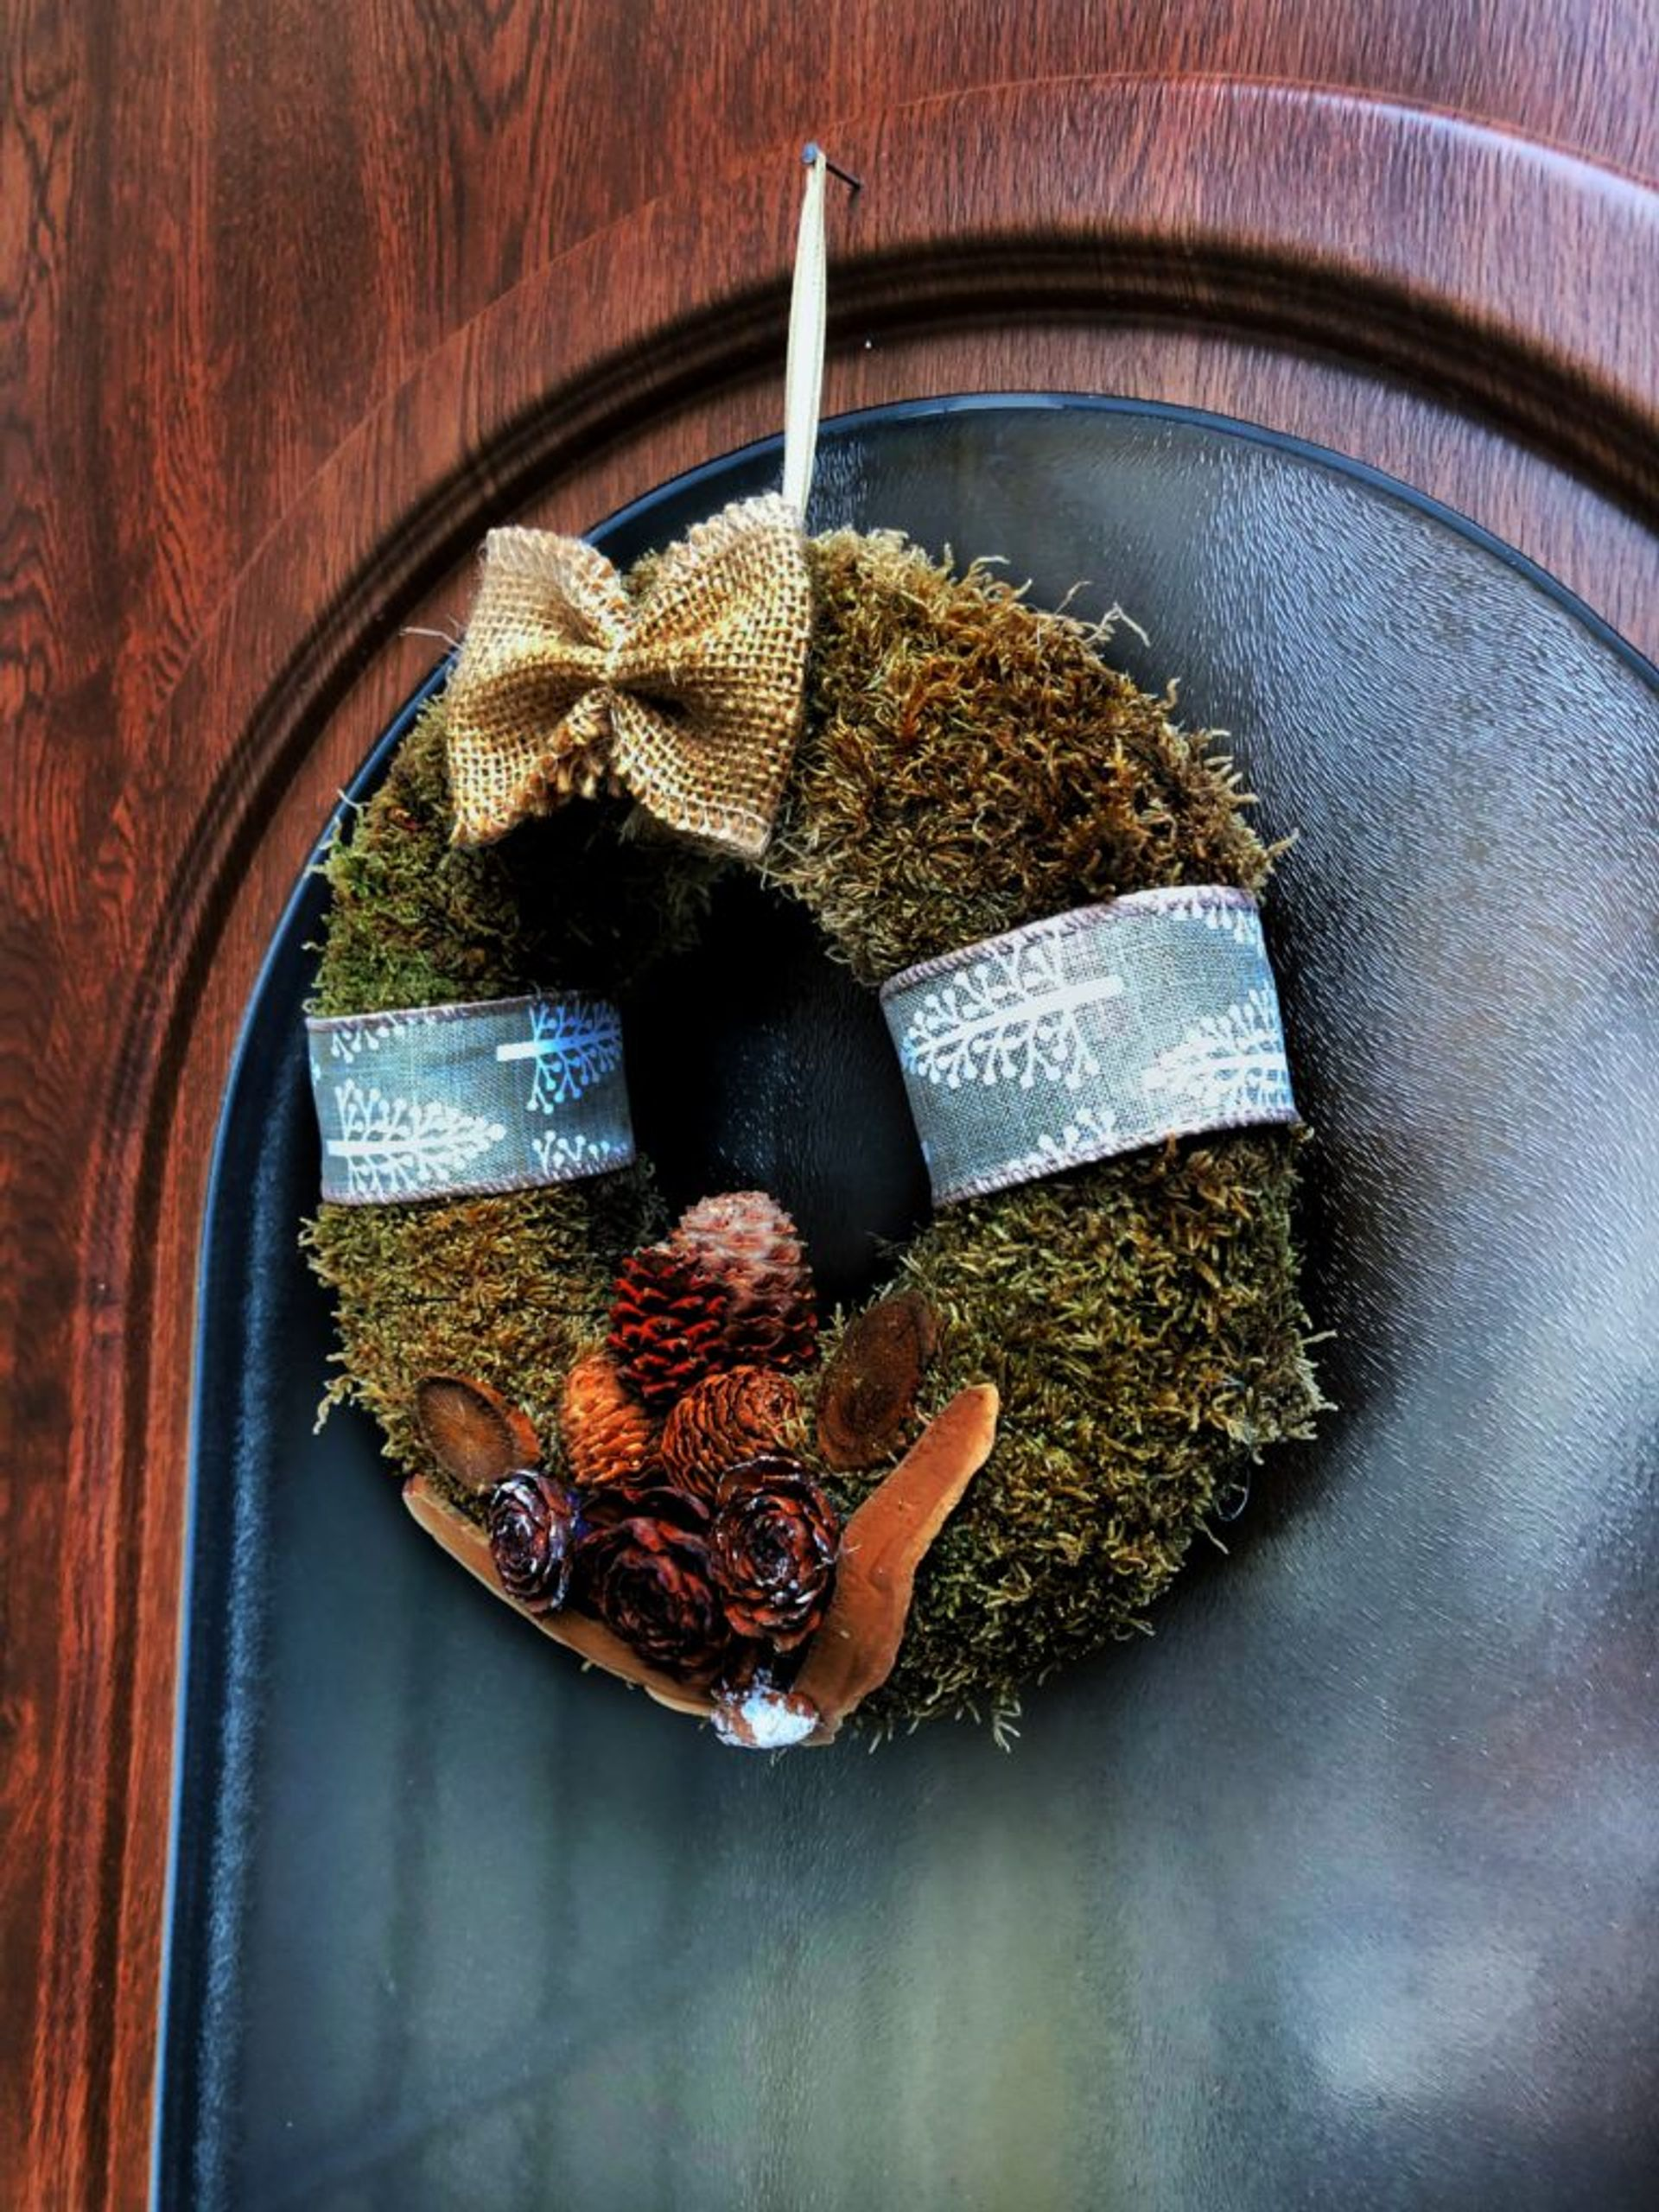 A Christmas wreath hanging on a door.